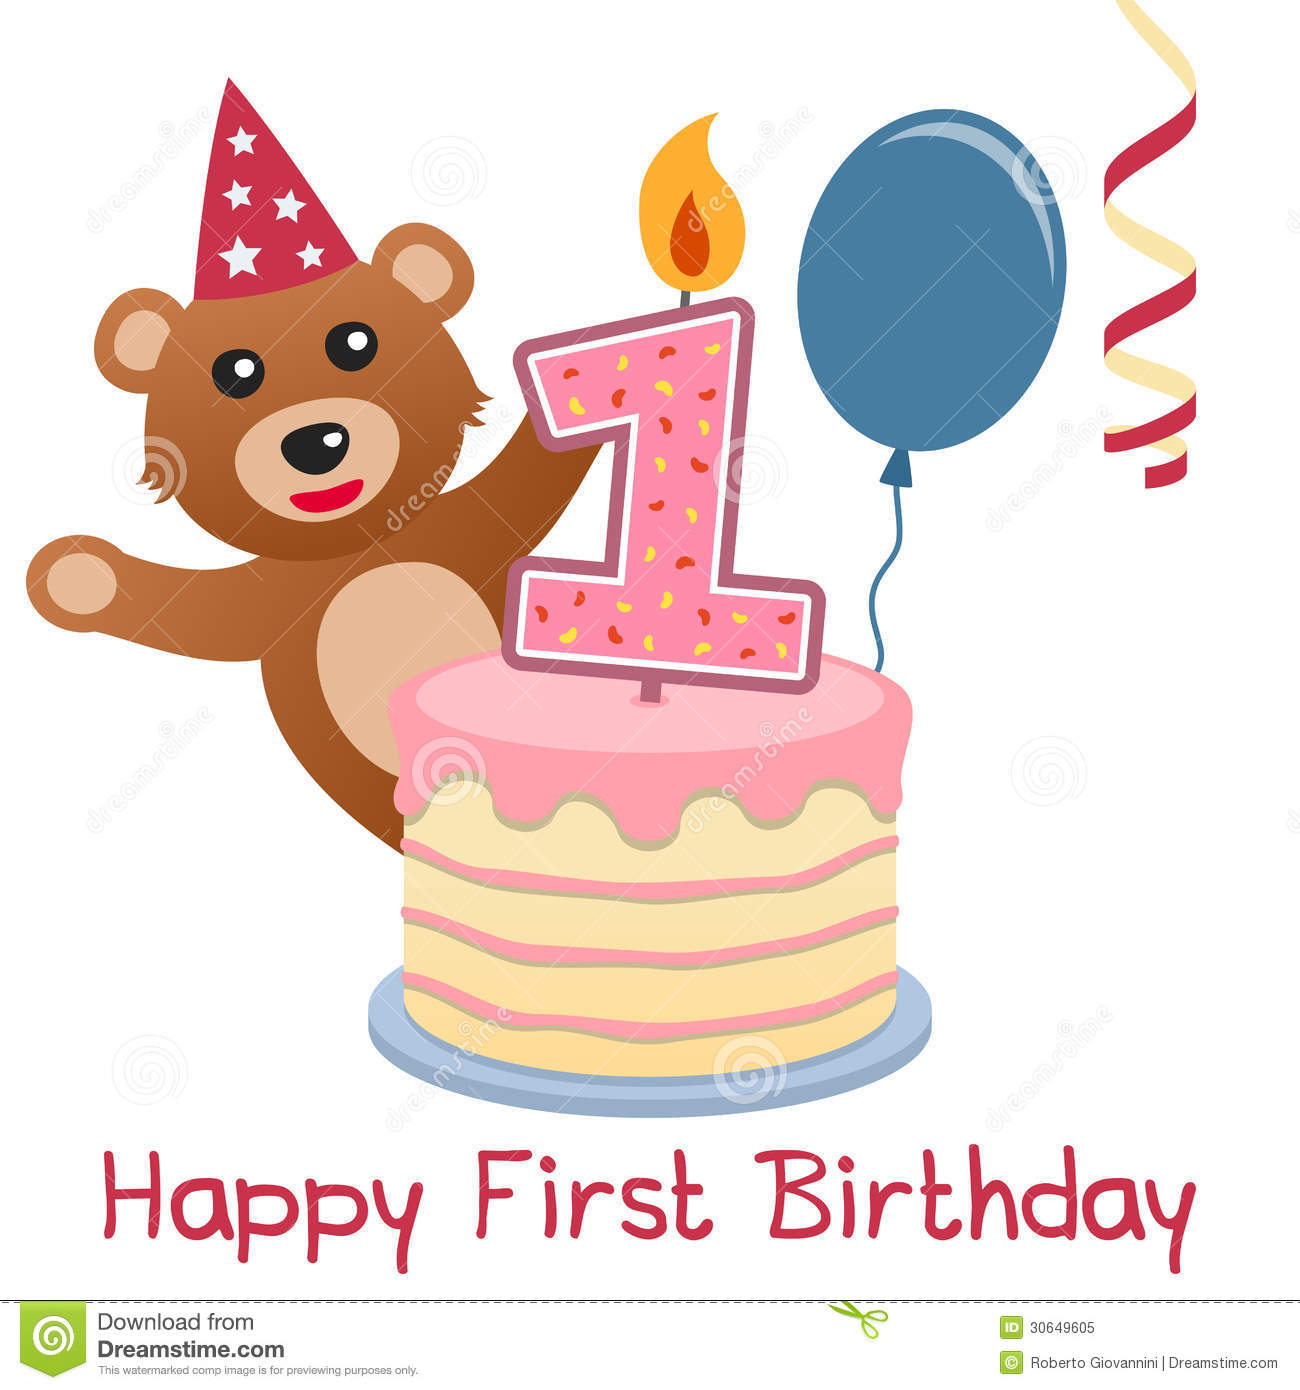 Download Birthday Greeting Cake Images : First Birthday Teddy Bear Royalty Free Stock Photo - Image ...